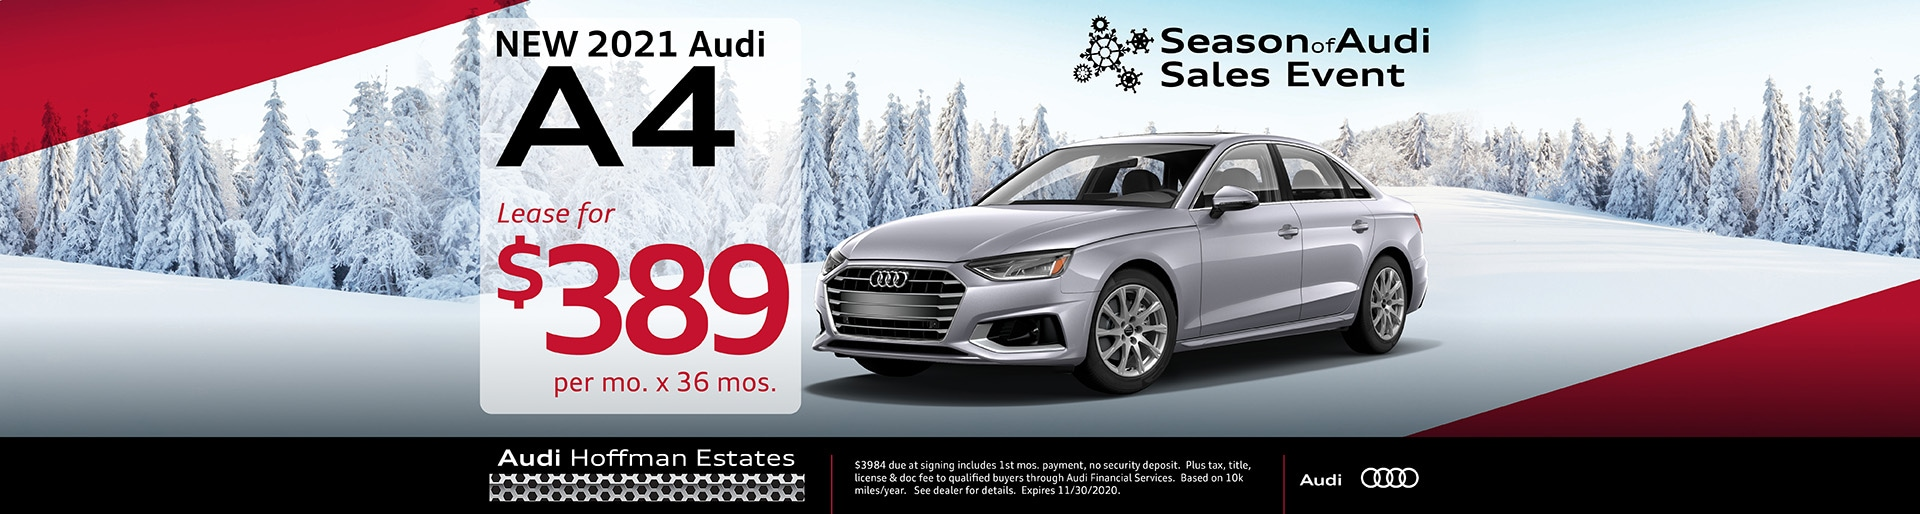 2021 Audi A4 lease offer, $389/mo for 36 months | Hoffman Estates, IL